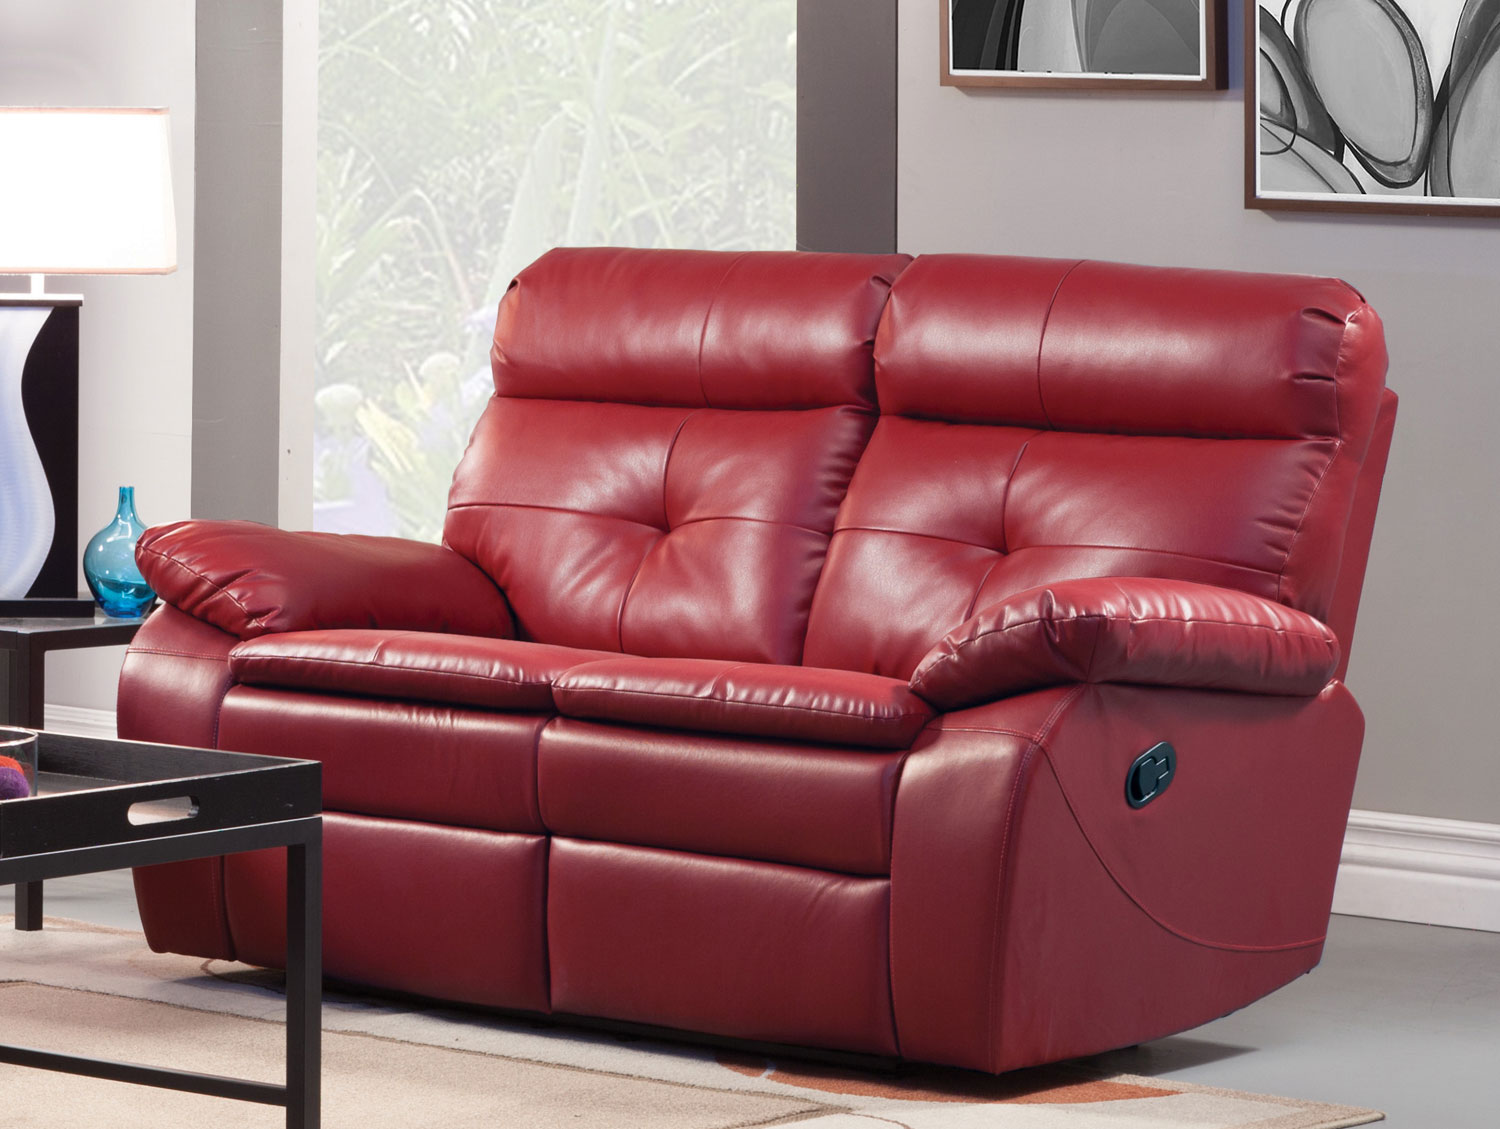 Homelegance wallace double reclining love seat red bonded leather match 9604red 2 Reclining loveseat sale